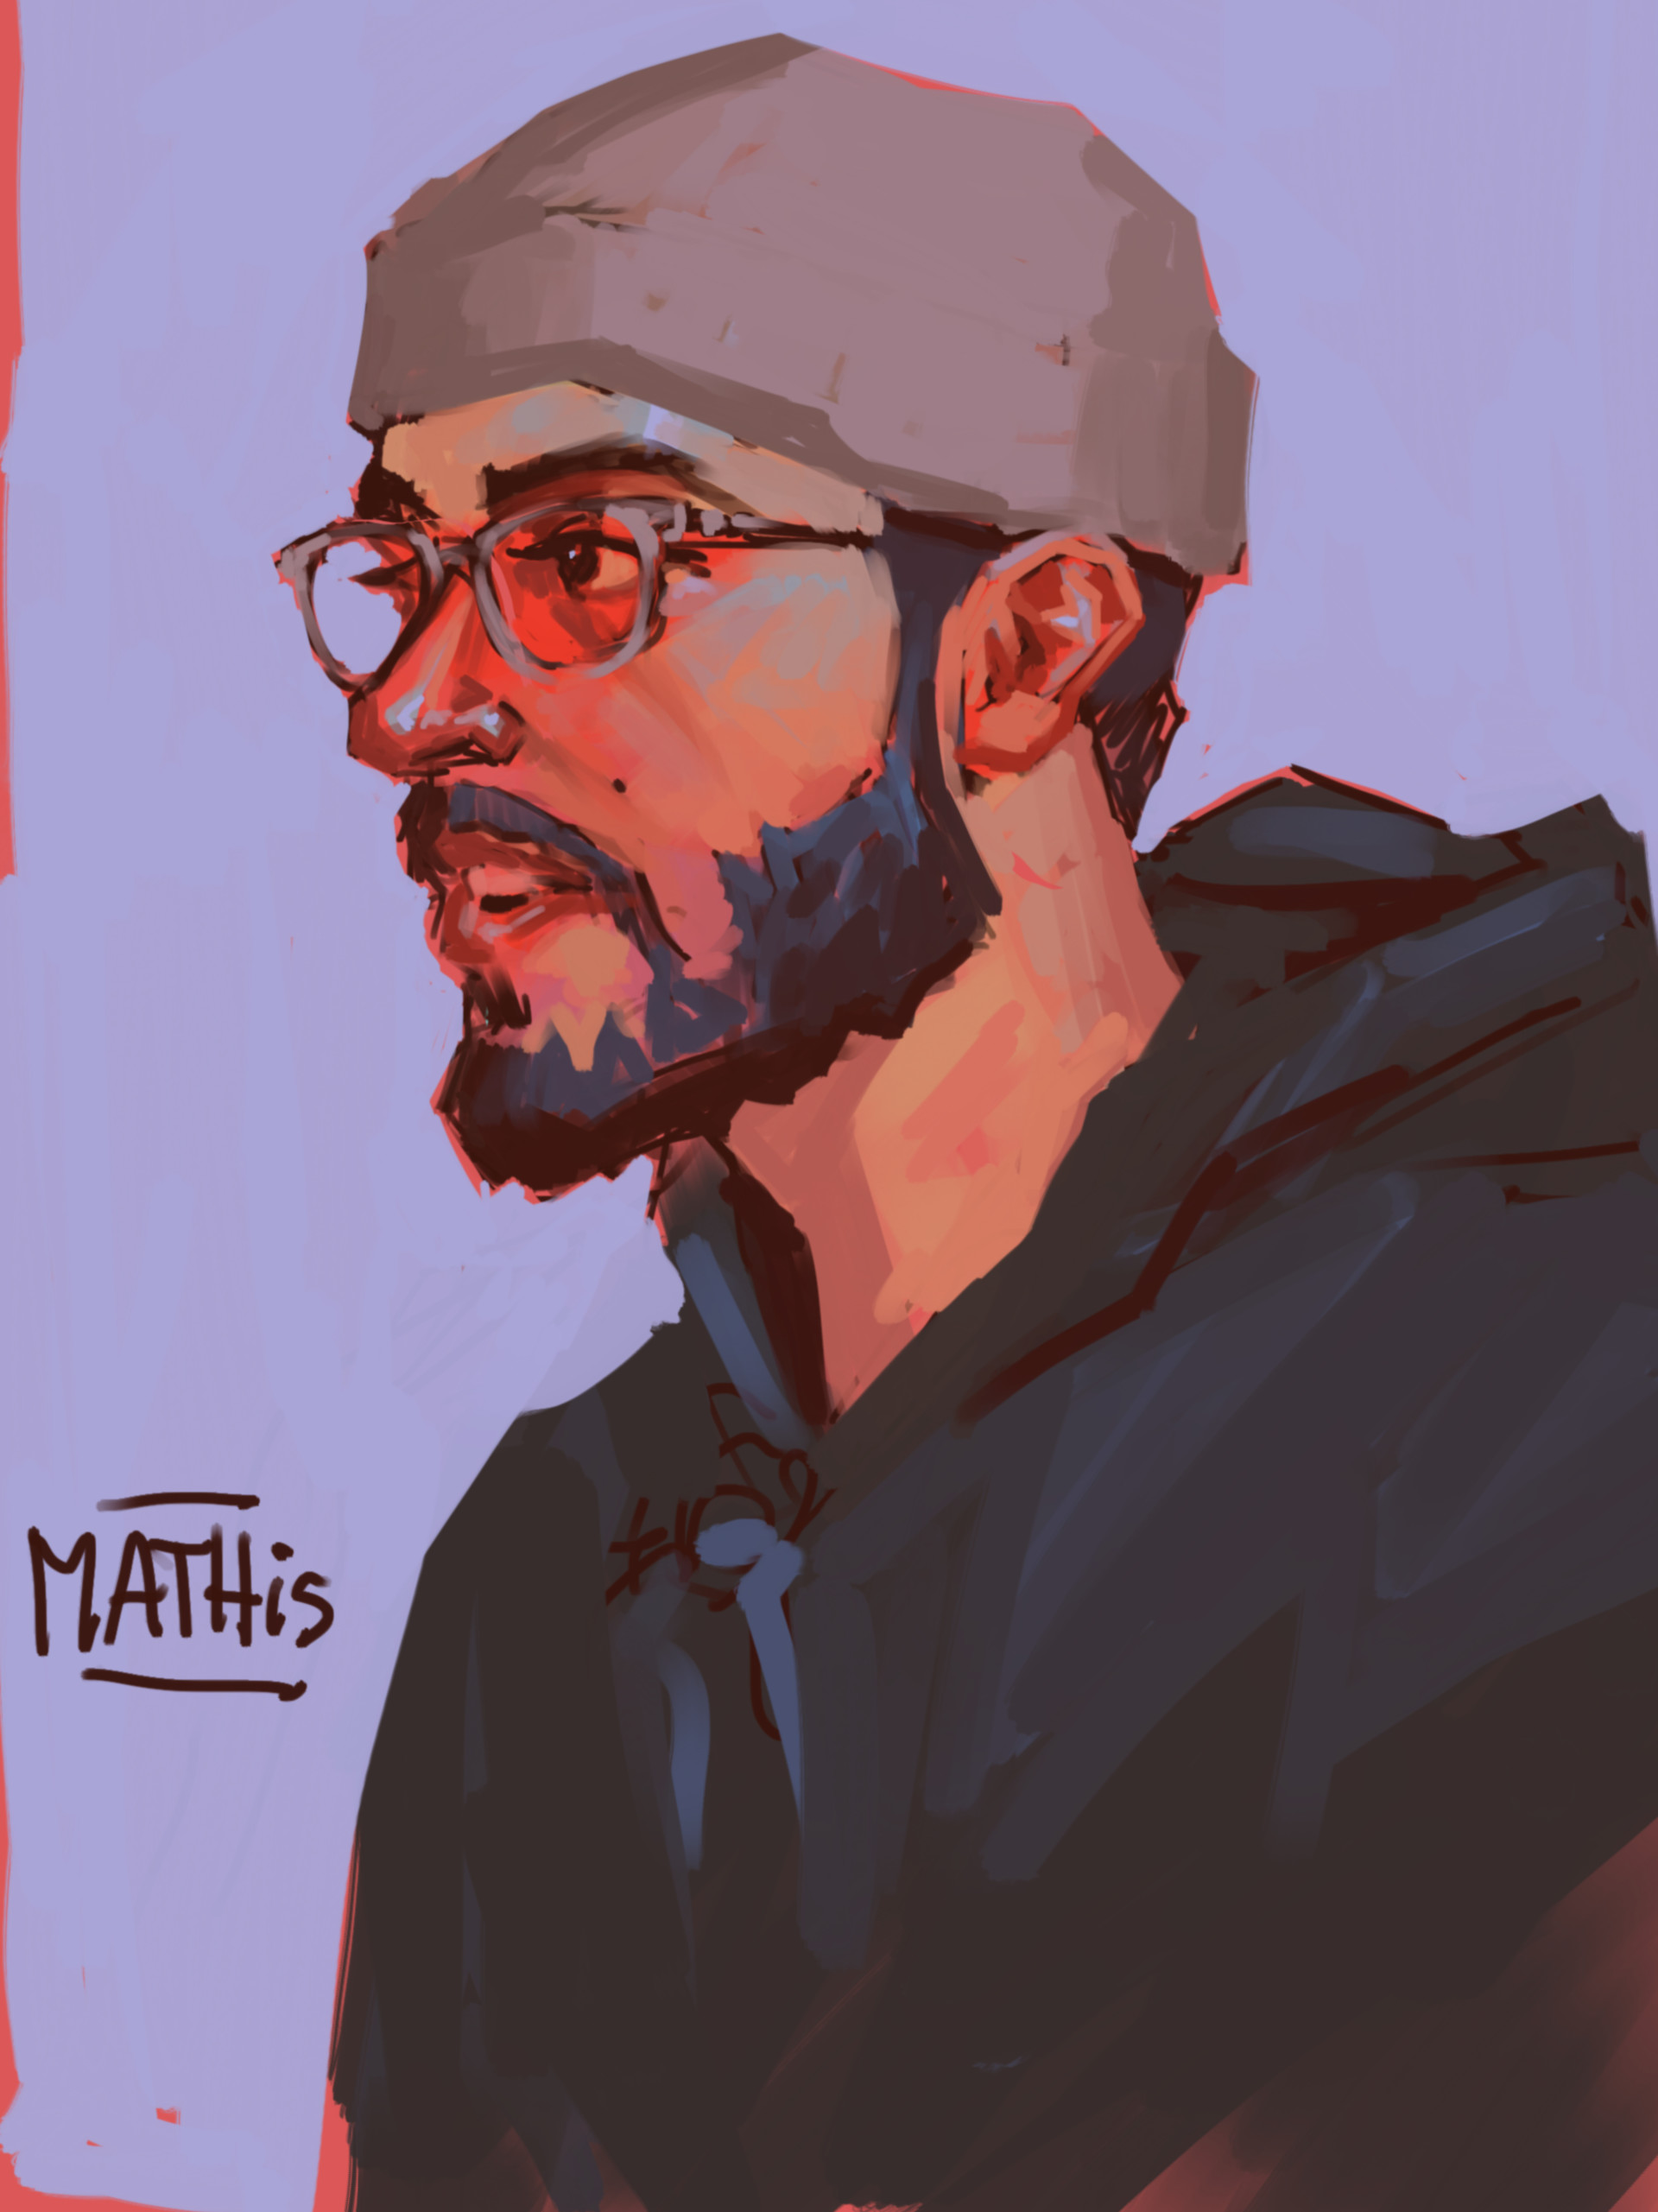 Portrait of my mate Mathis